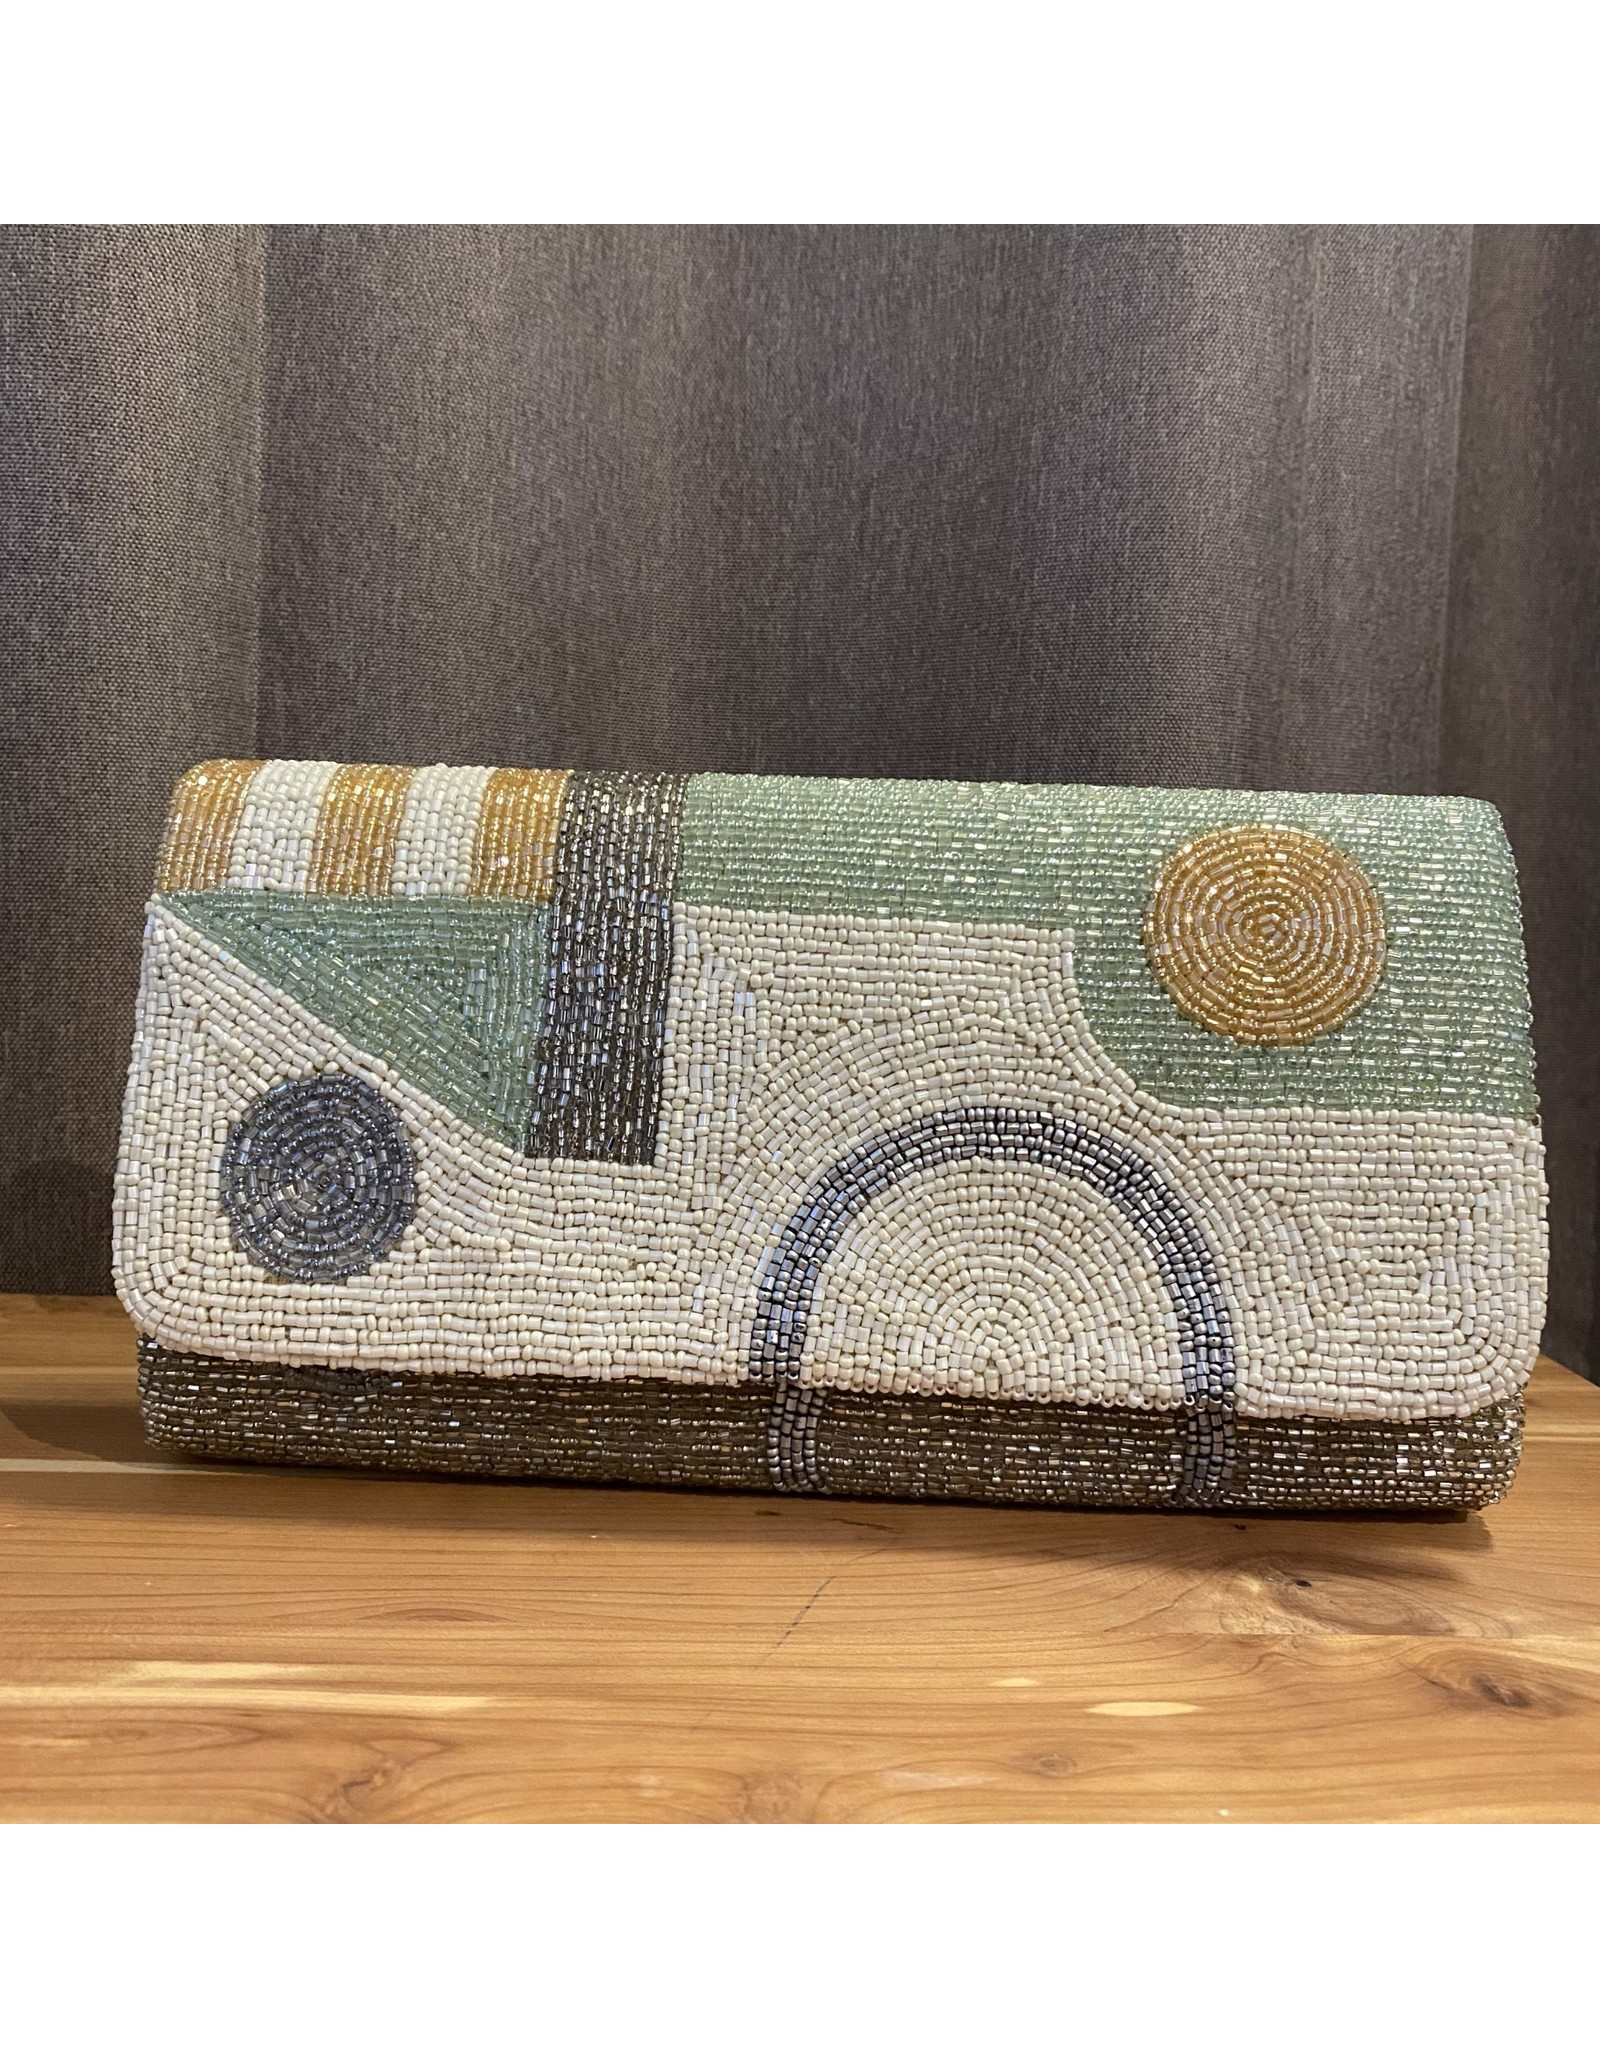 Tiana Designs Metalic with Mint Green Beaded Clutch